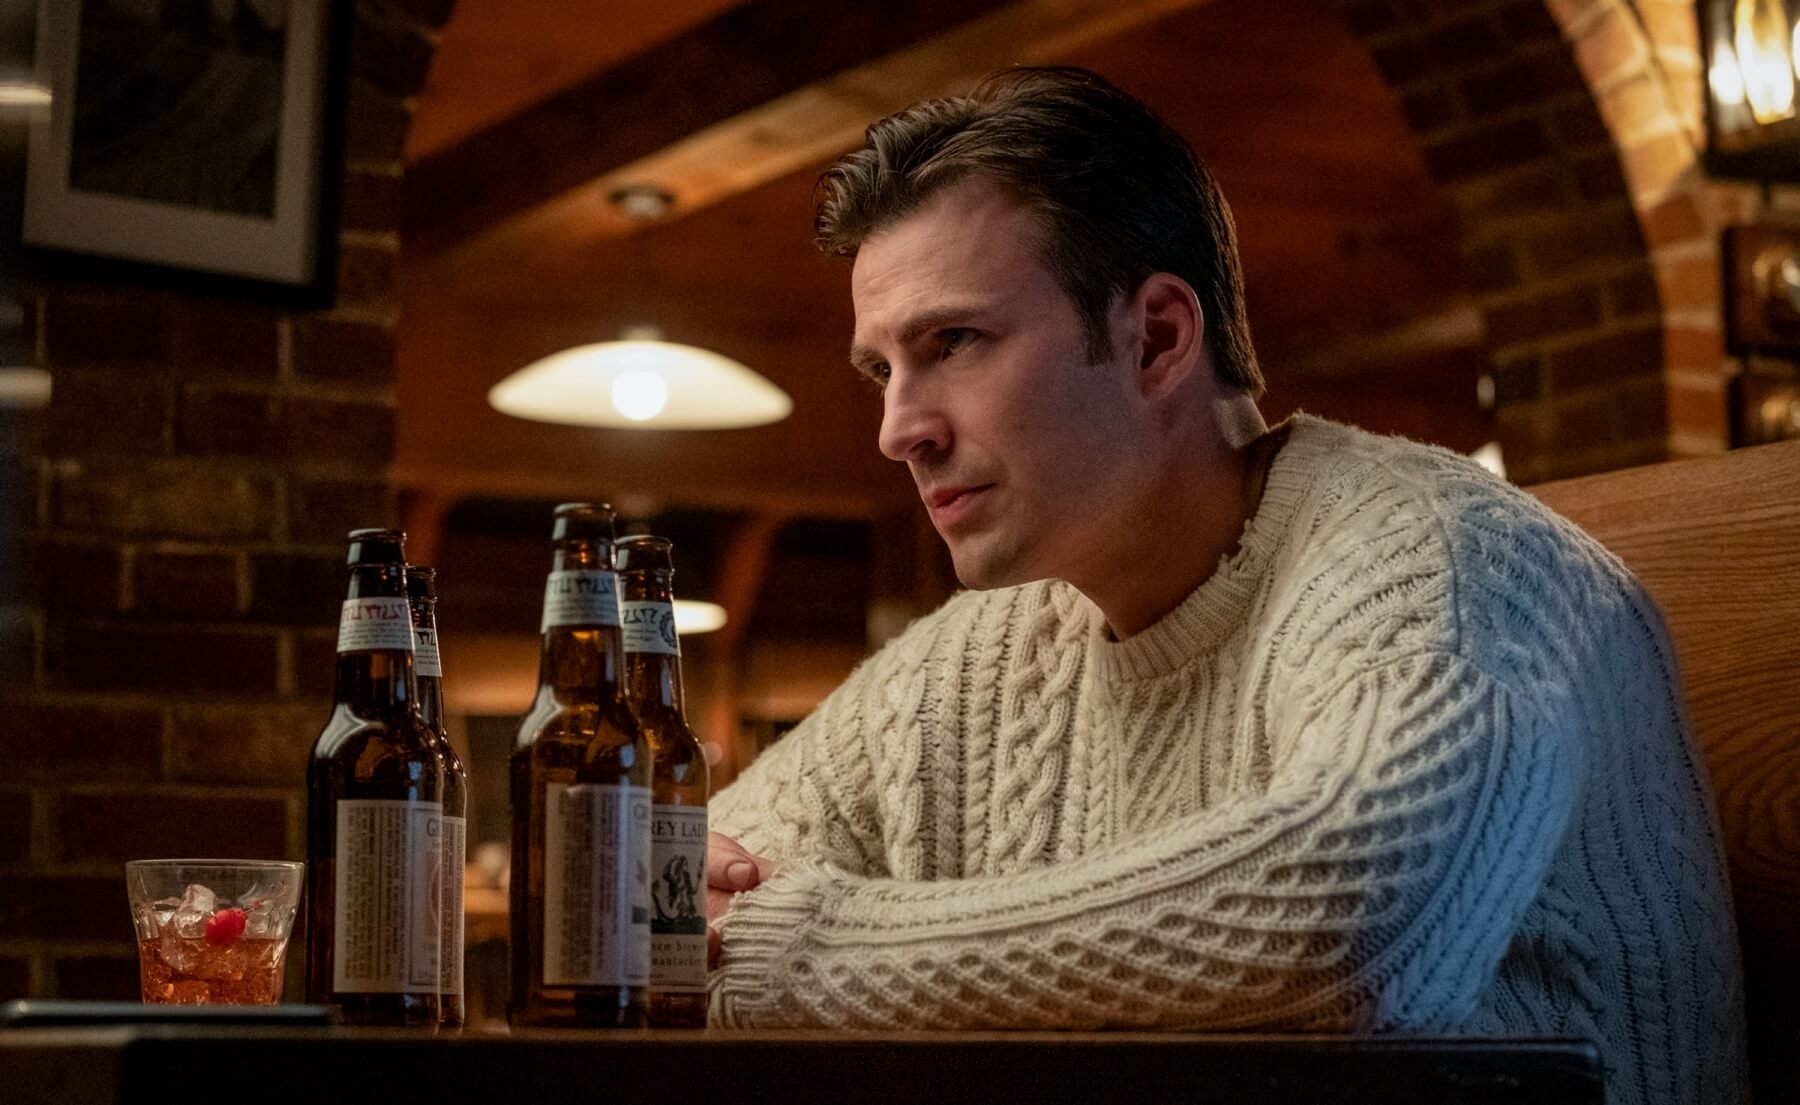 Chris Evan in a Peregrine sweater in Knives Out movie